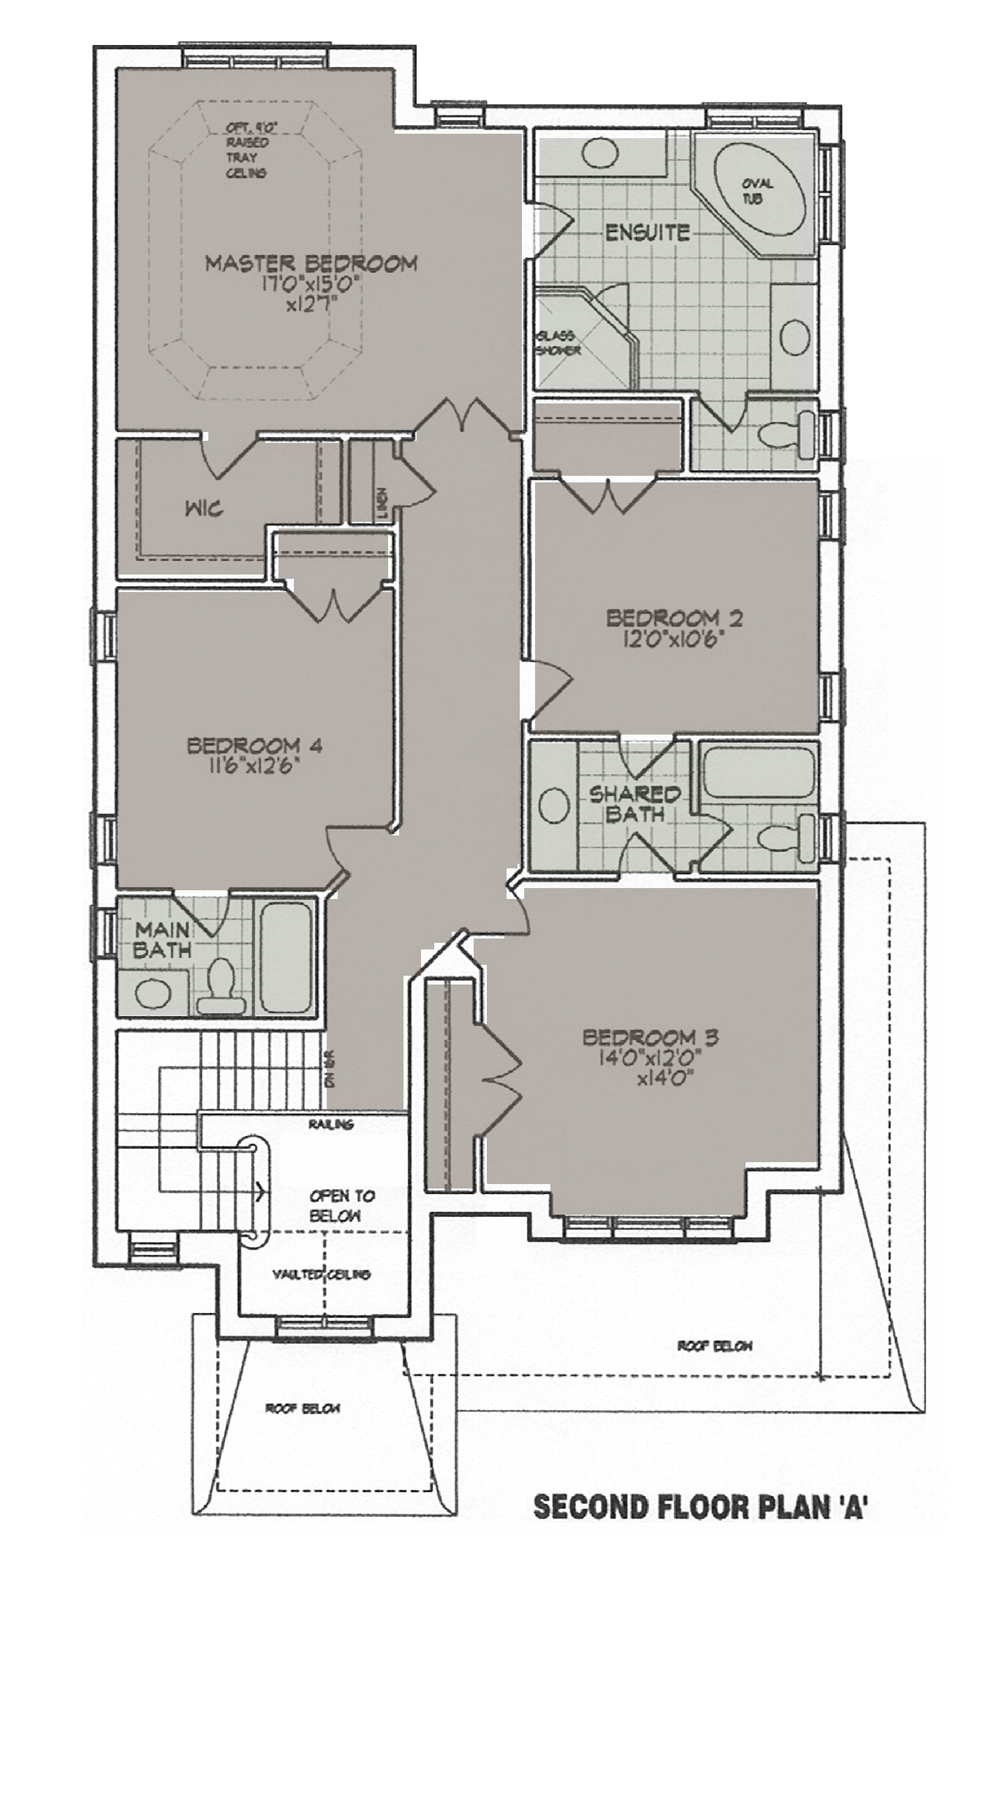 2B. 2nd Flr. Plan Bawbiall16.jpg